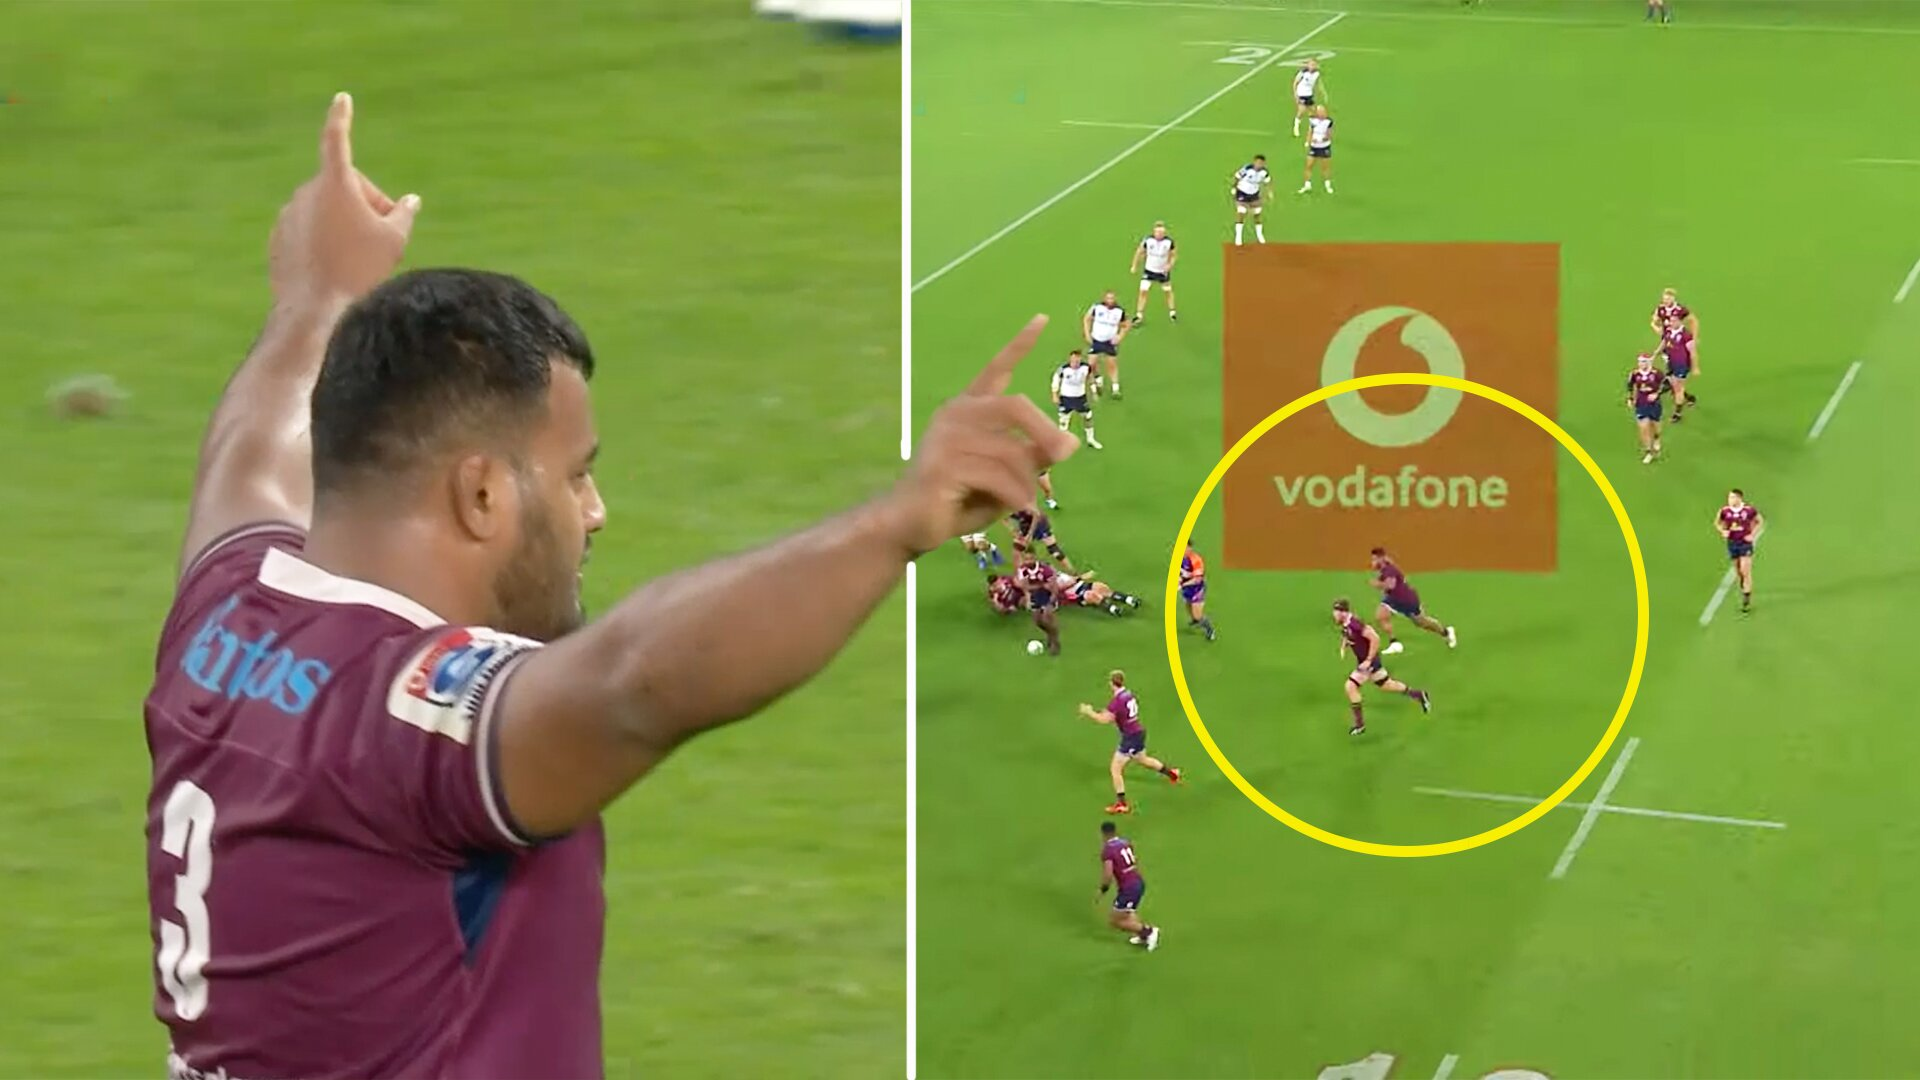 Critics rave over world's new superprop Taniela Tupou after this sensational moment for the Reds